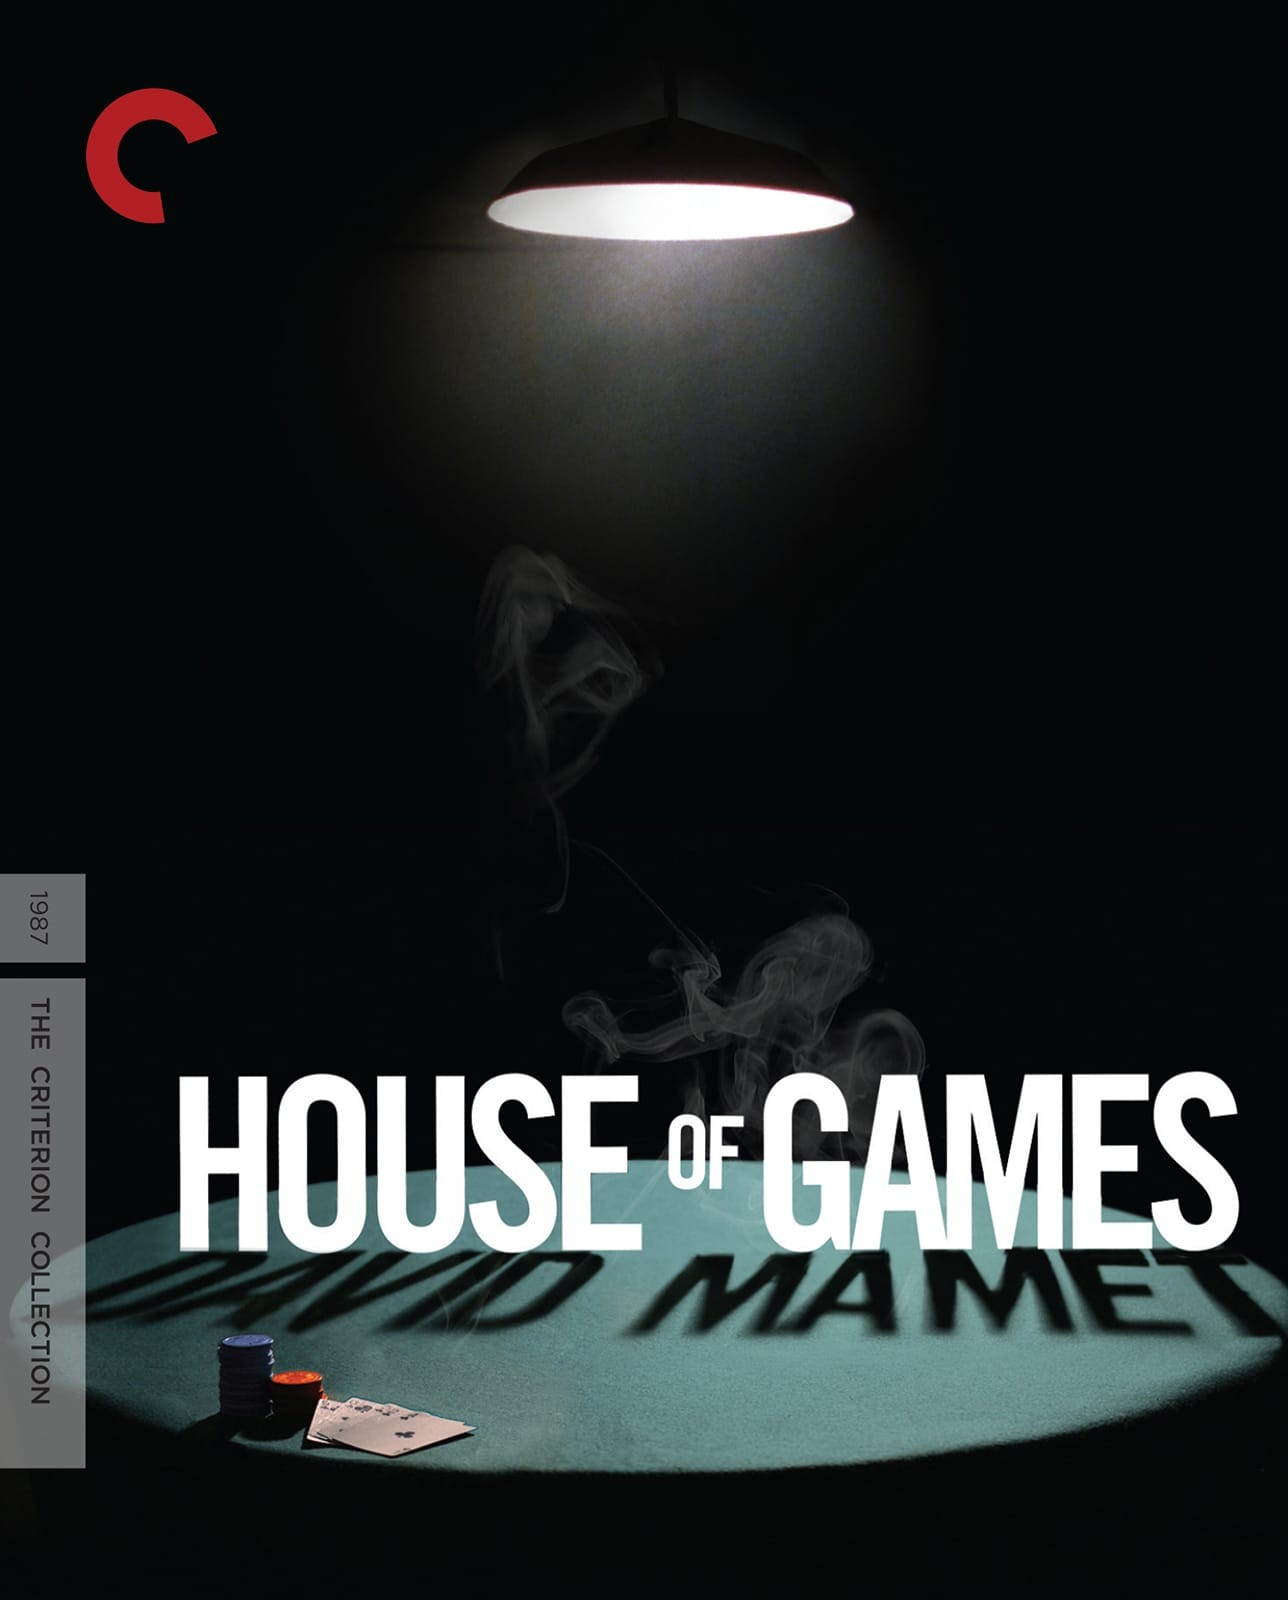 House of Games (1987) [Criterion Collection]